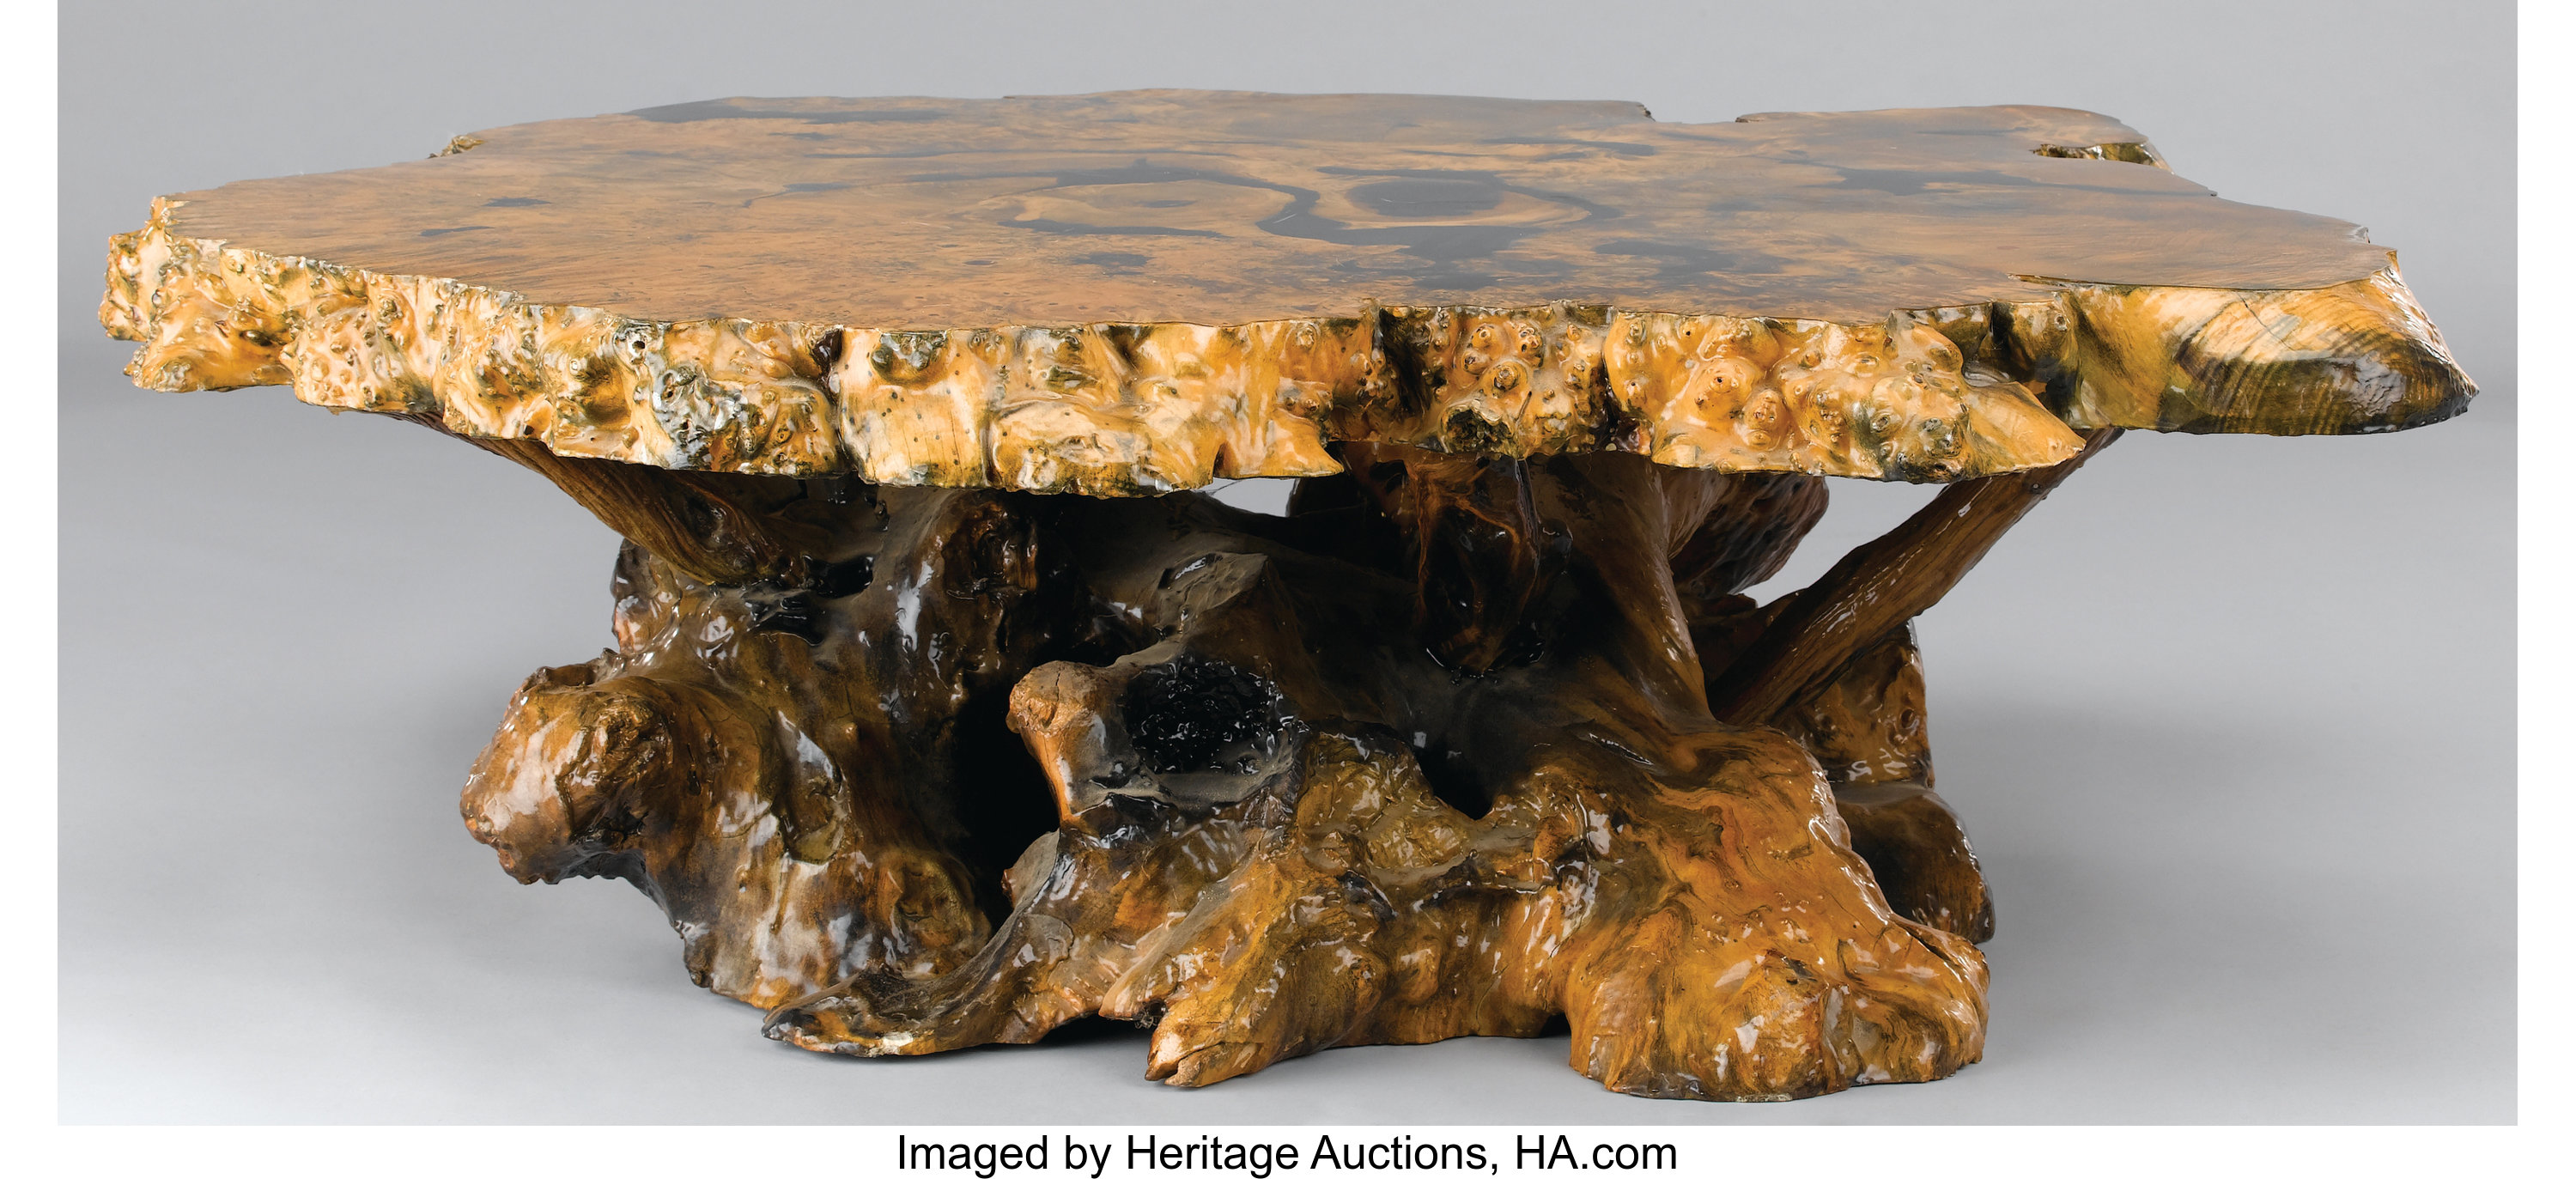 A Burl Wood Coffee Table 20th Century 17 X 58 Inches 43 2 X Lot 63338 Heritage Auctions